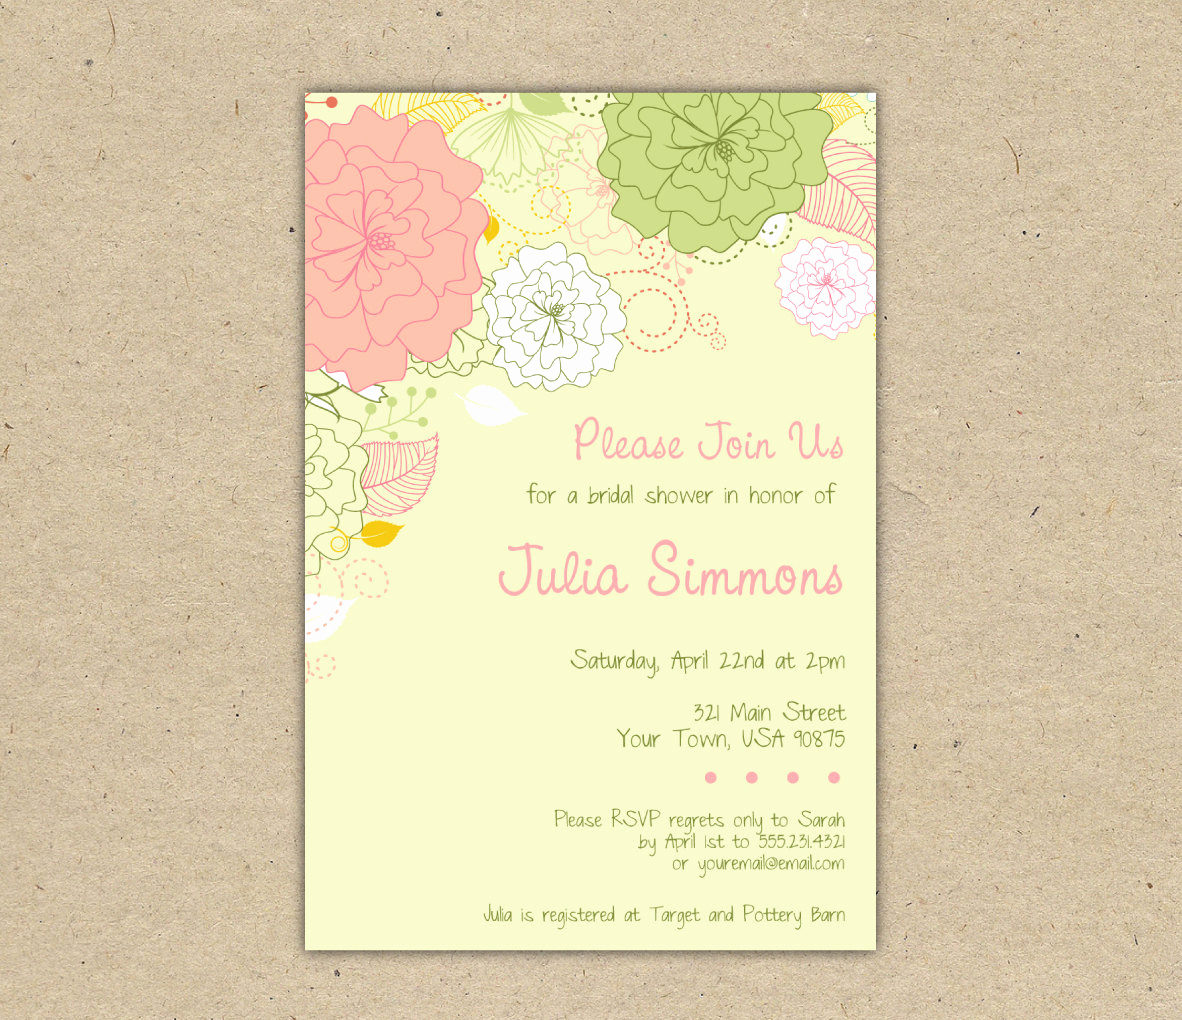 Printable Bridal Shower Invitation Templates Awesome Rustic Bridal Shower Invitation Templates